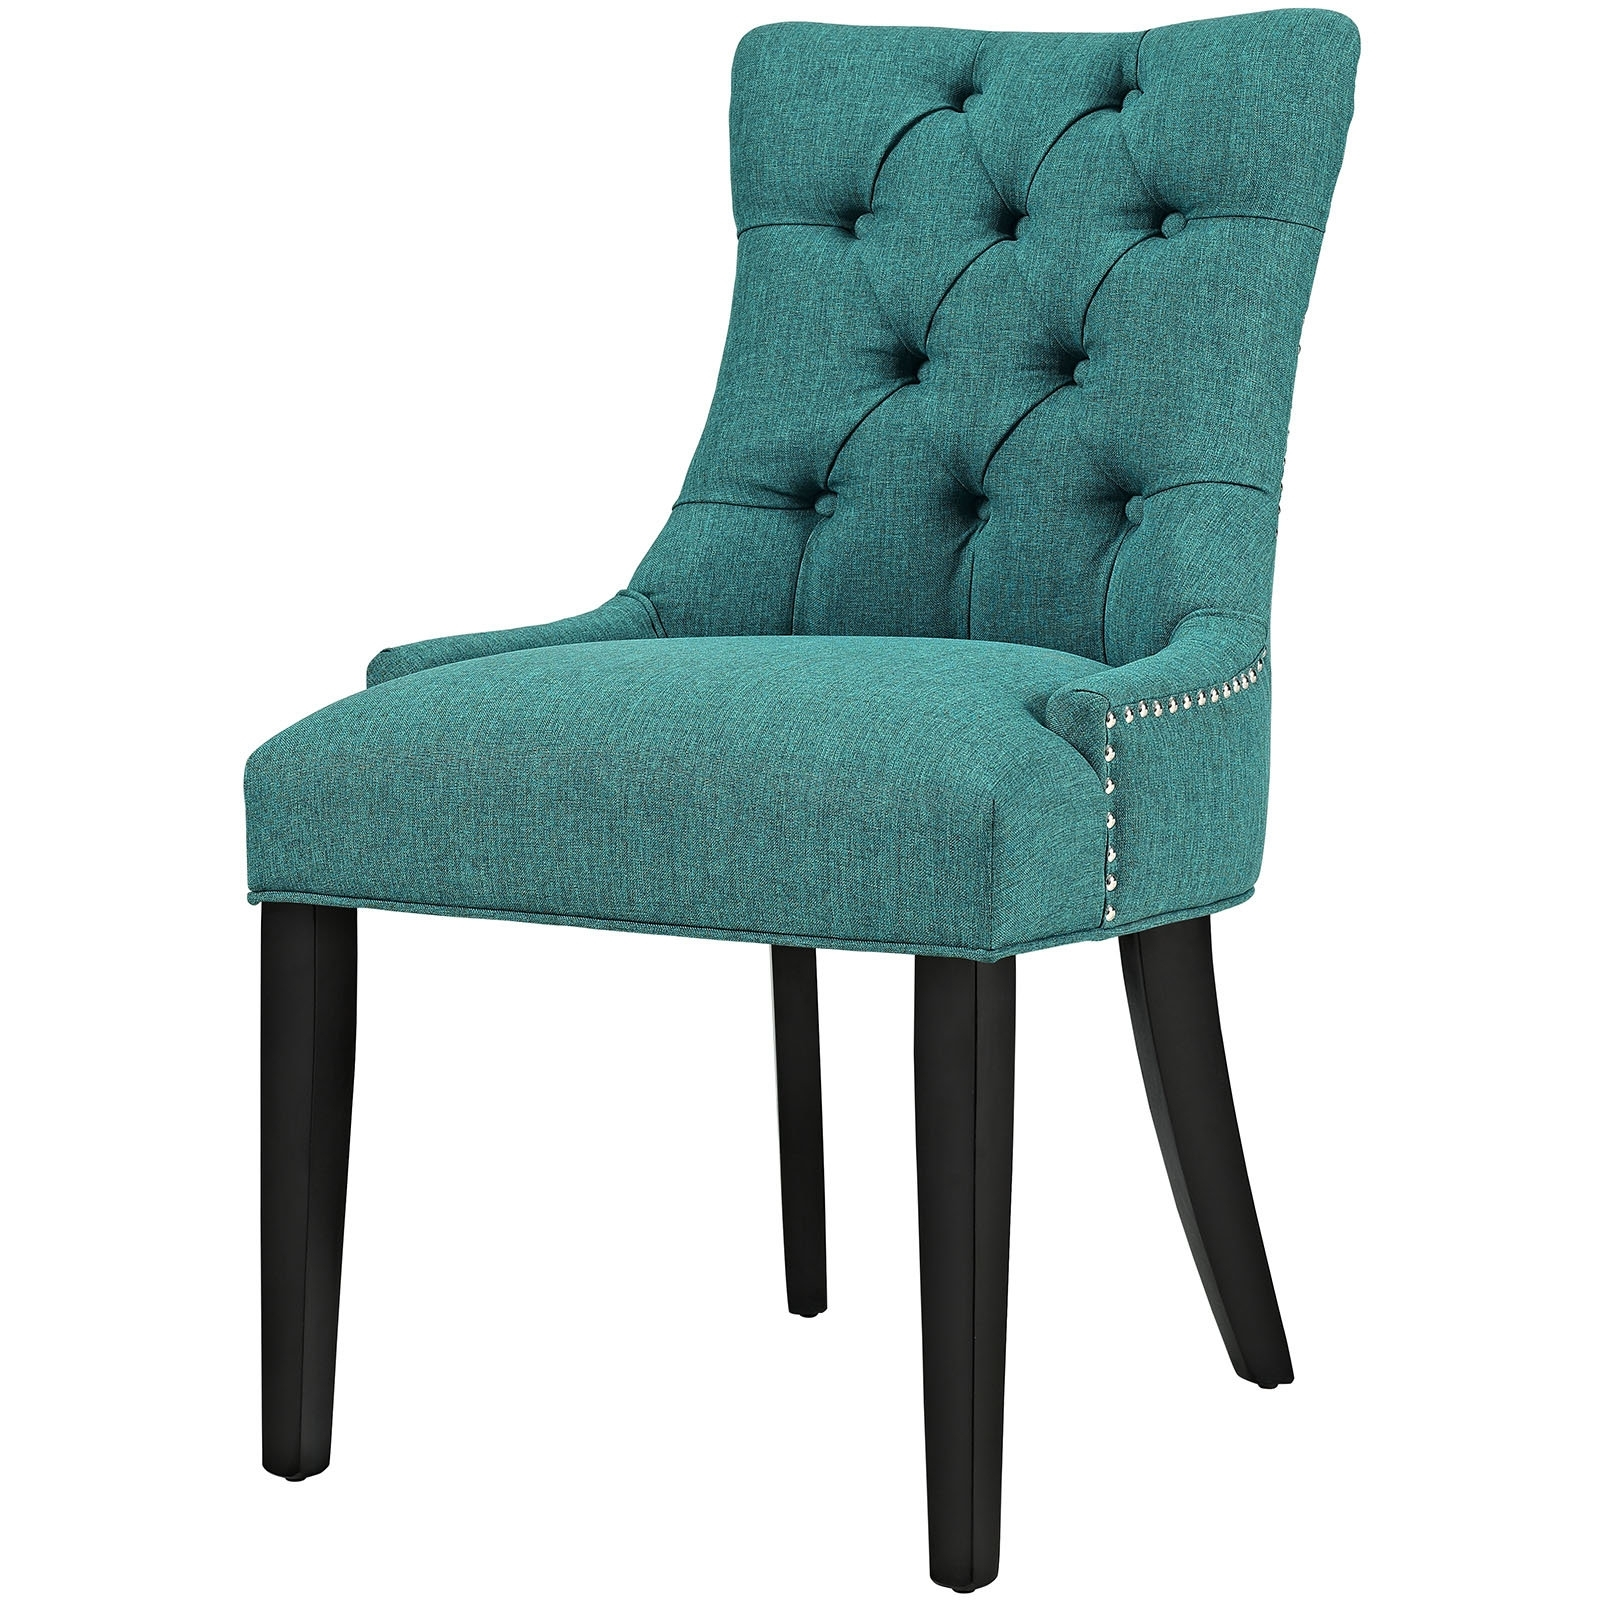 Nautical Blue Side Chairs Throughout Well Known Dark Teal Dining Chair (Gallery 16 of 20)